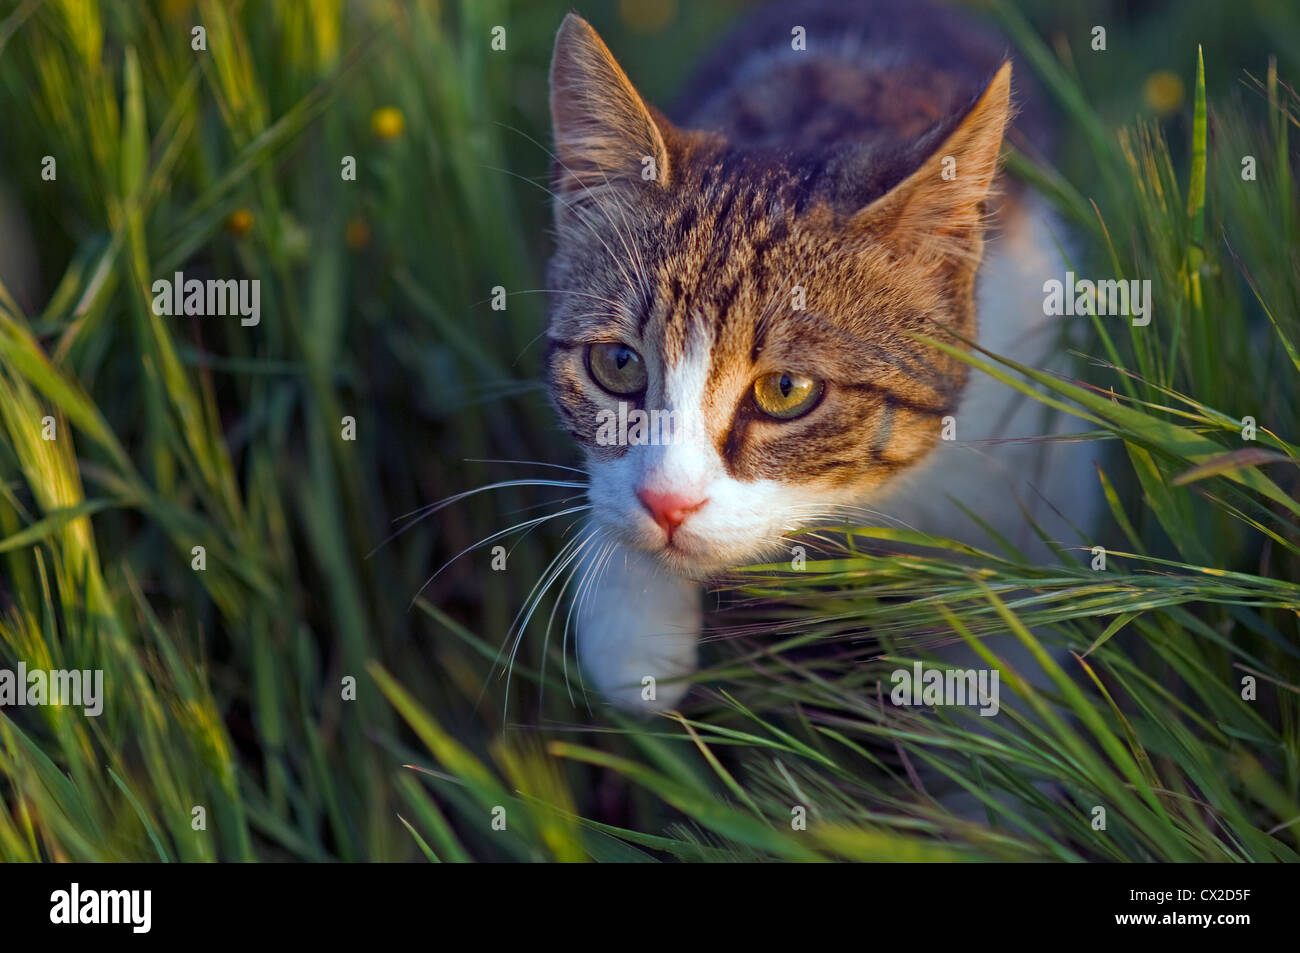 A young cat lurking in lush green grass - Stock Image